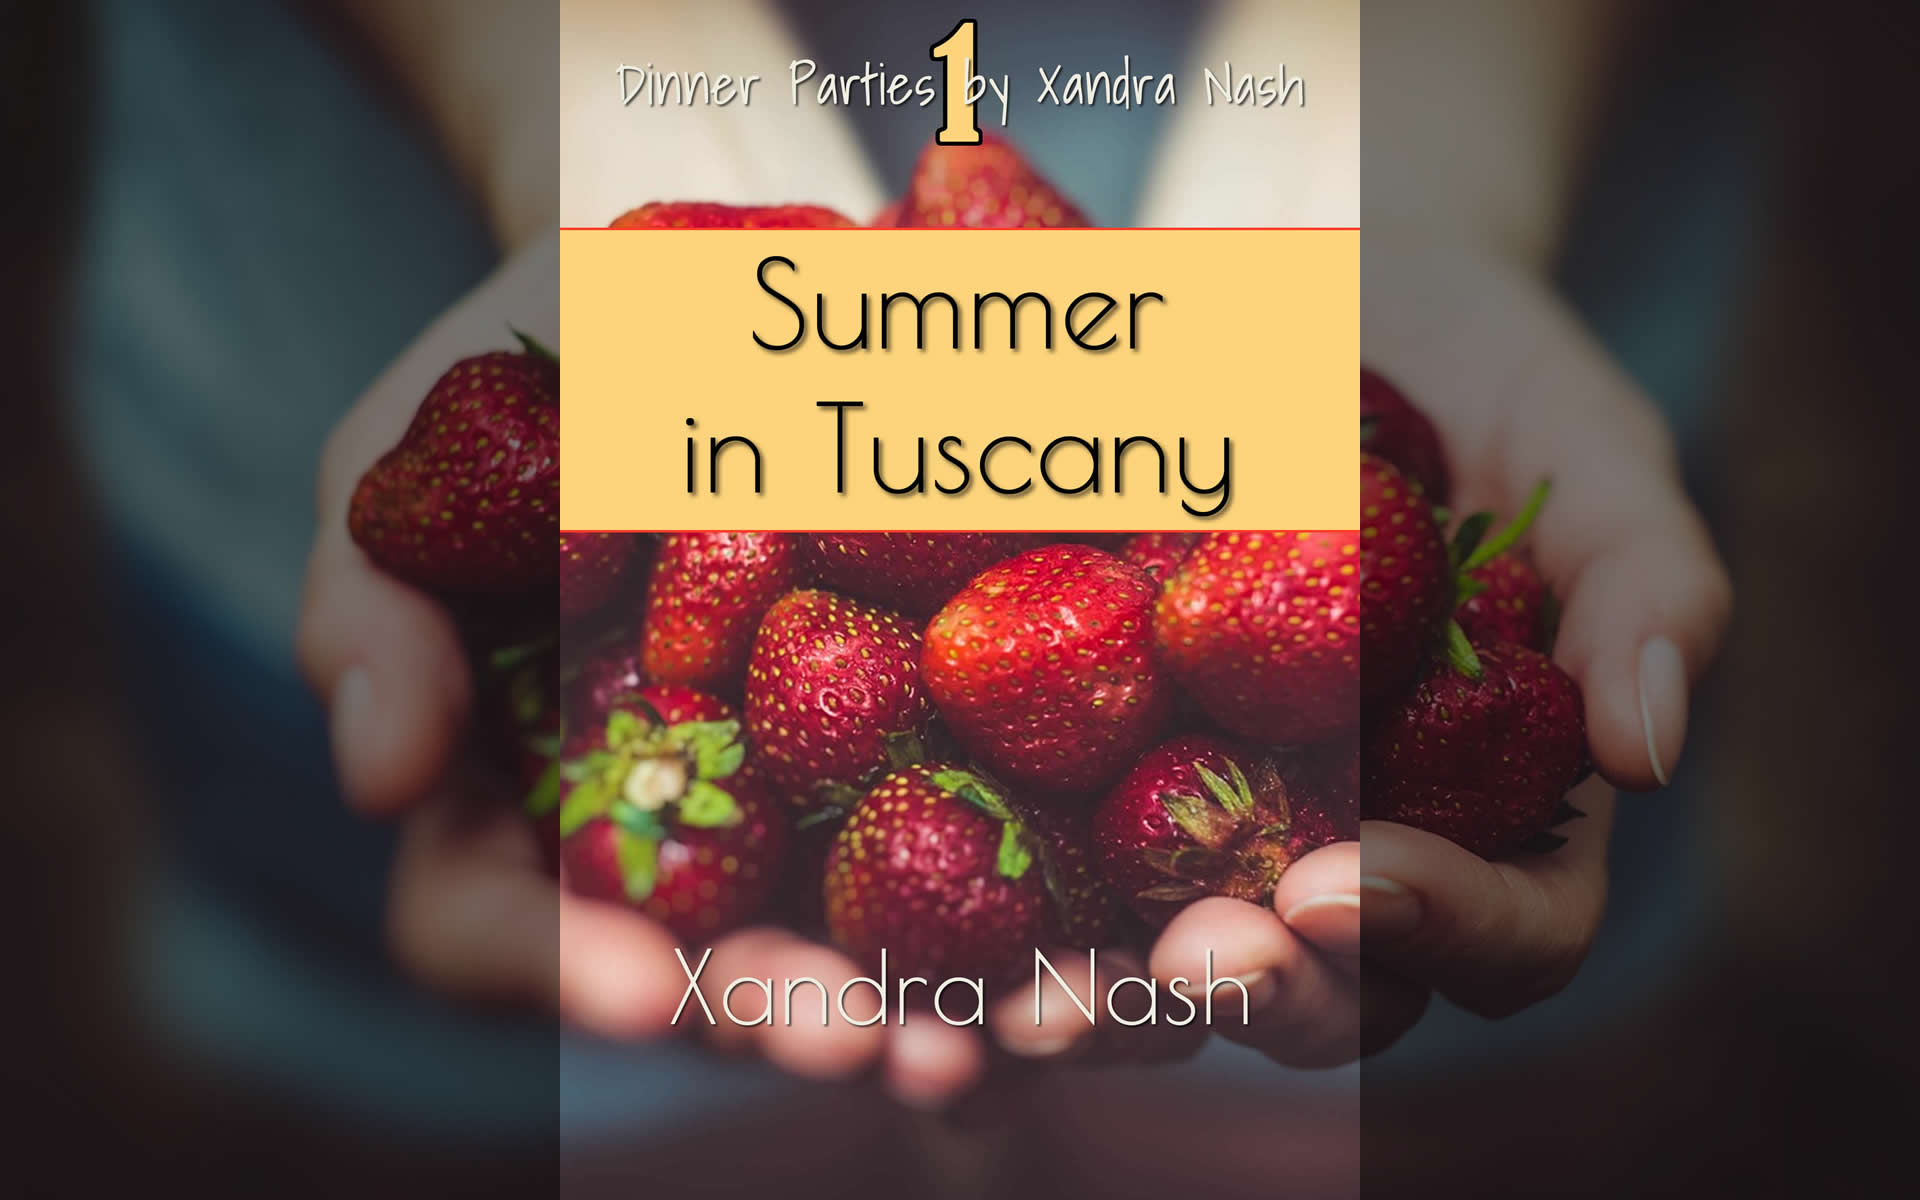 Summer in Tuscany - Dinner Party how-to book by Party Planner Xandra Nash